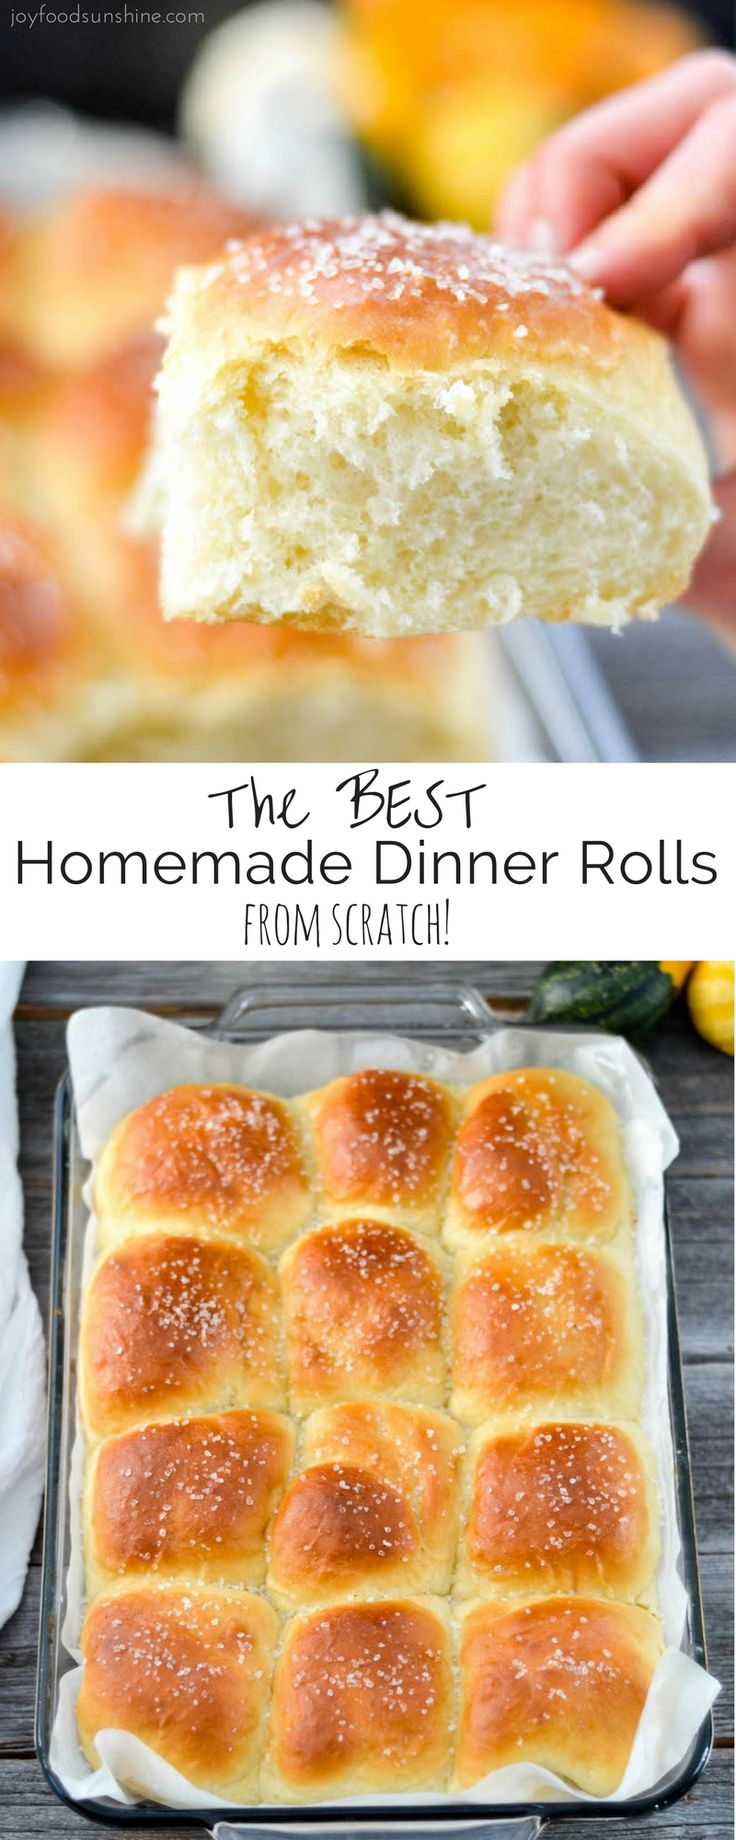 This Homemade Dinner Rolls recipe turns out perfect every time. Dense yet fluffy, slightly sweet and salty, and irresistibly buttery! The only homemade roll recipe you will ever need!